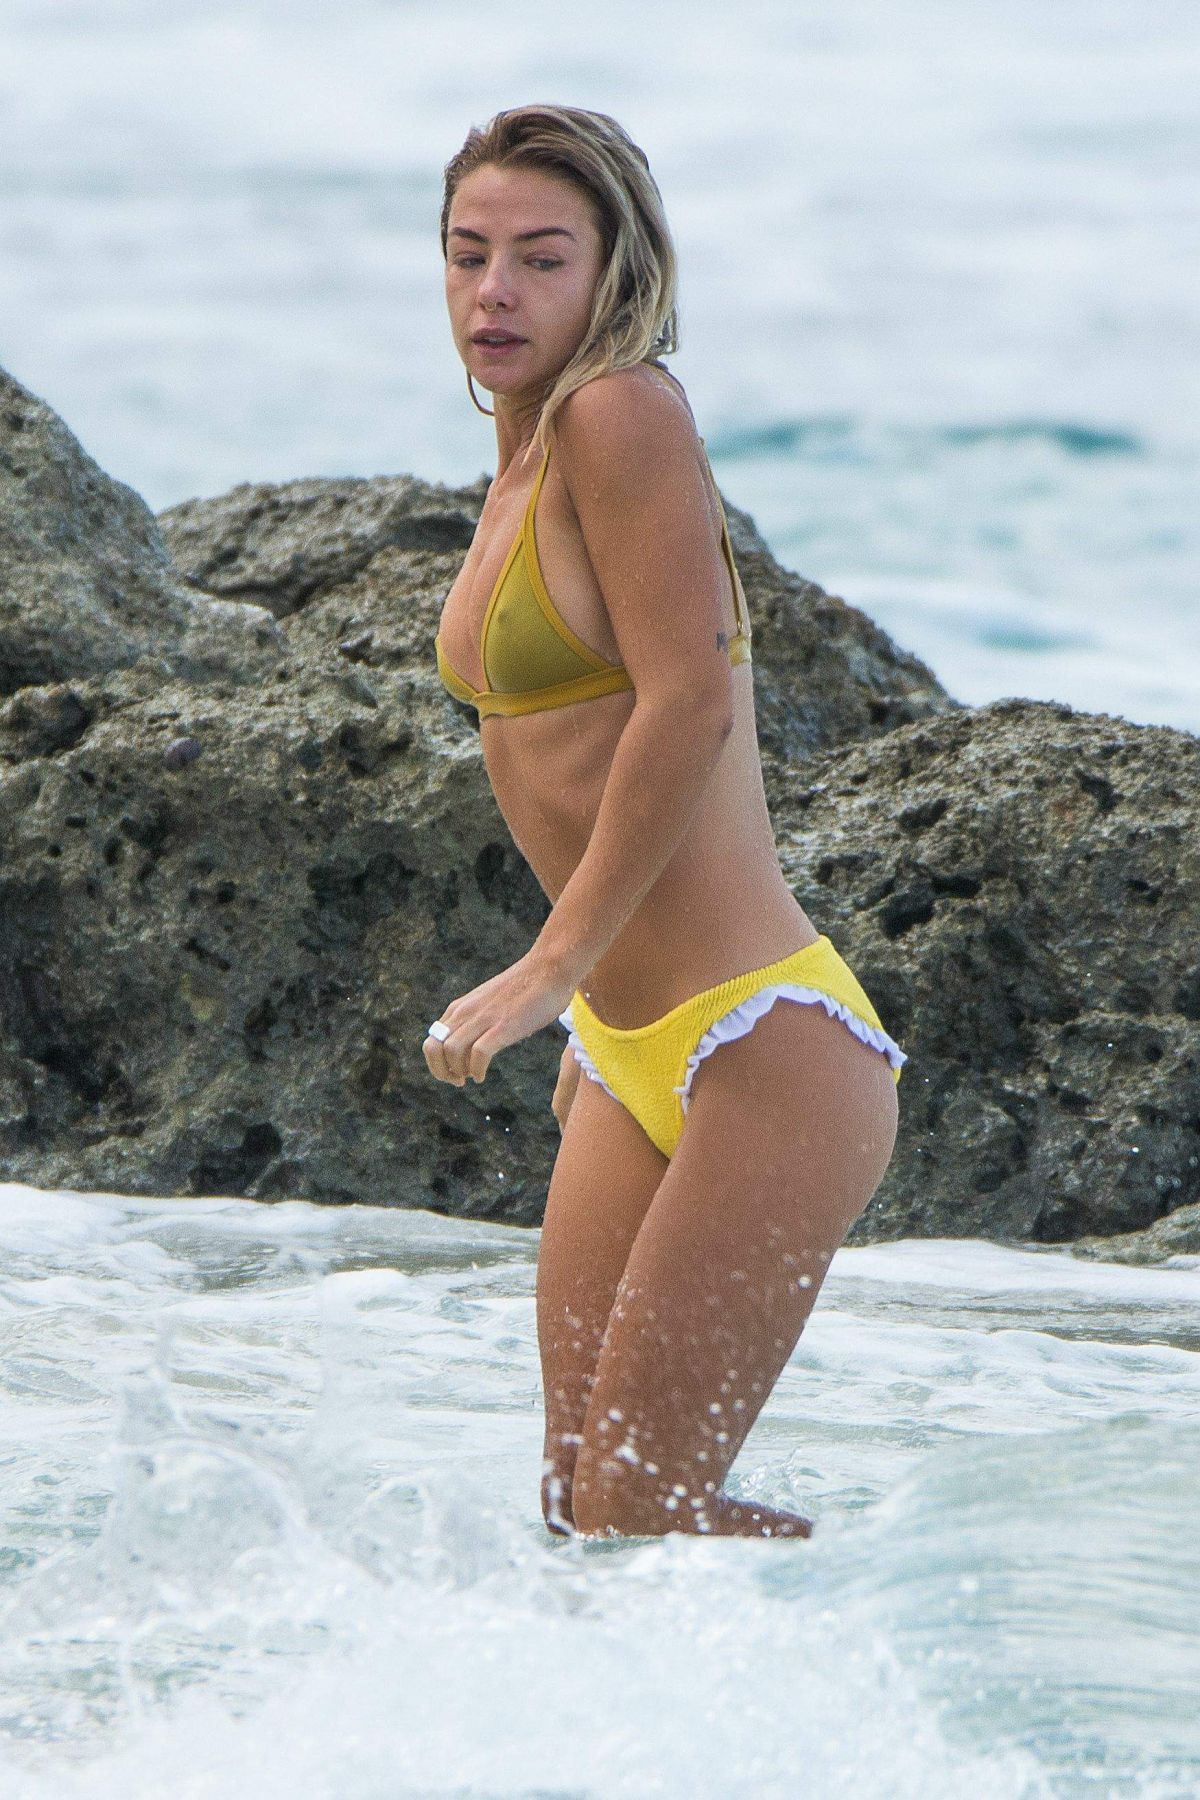 Lottie Moss In A one piece In Bridgetown, Barbados   lottie-moss-in-a-one-piece-in-bridgetown-barbados_17